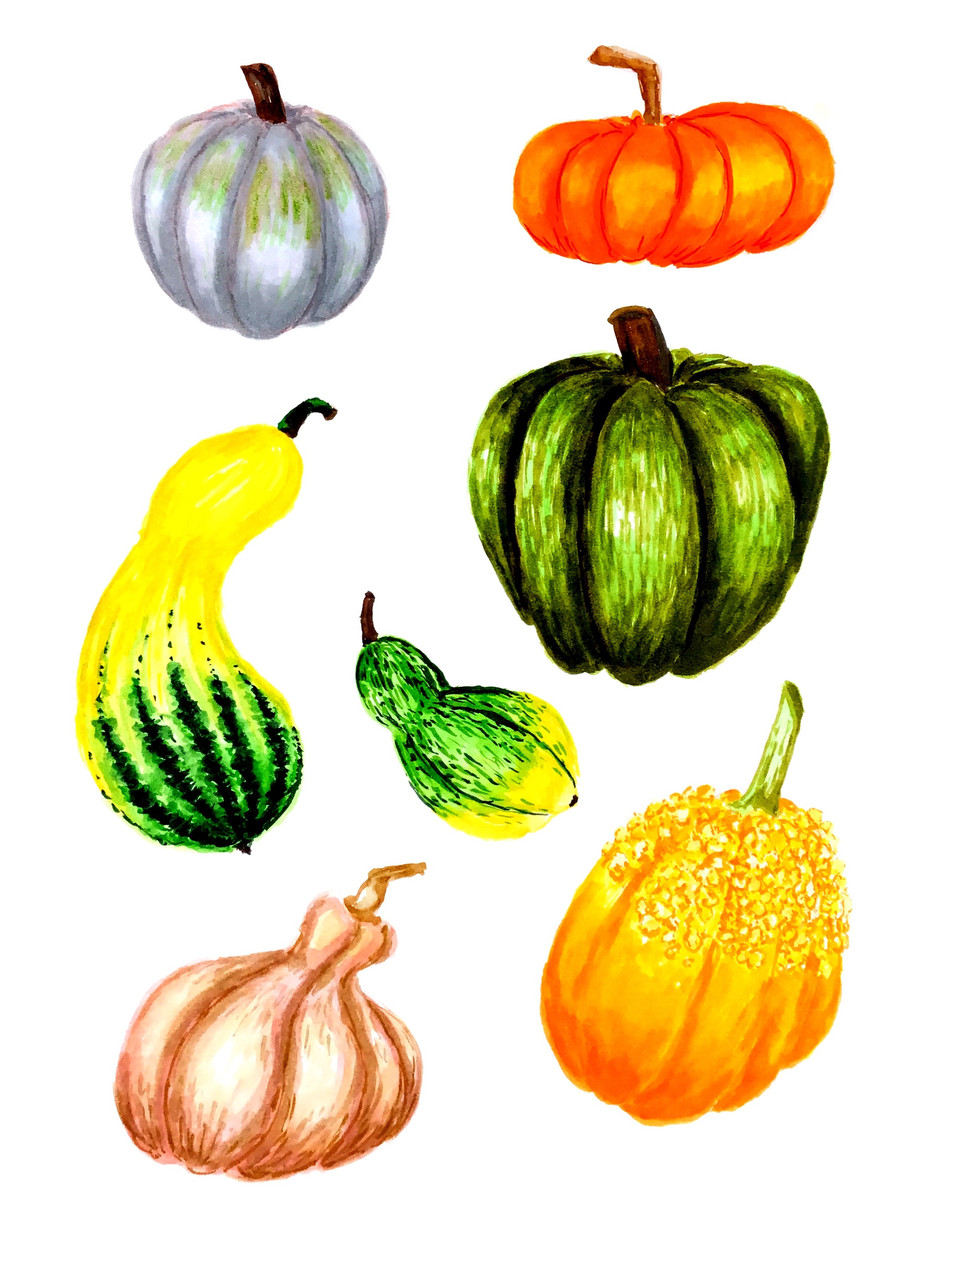 squash_collection.jpg